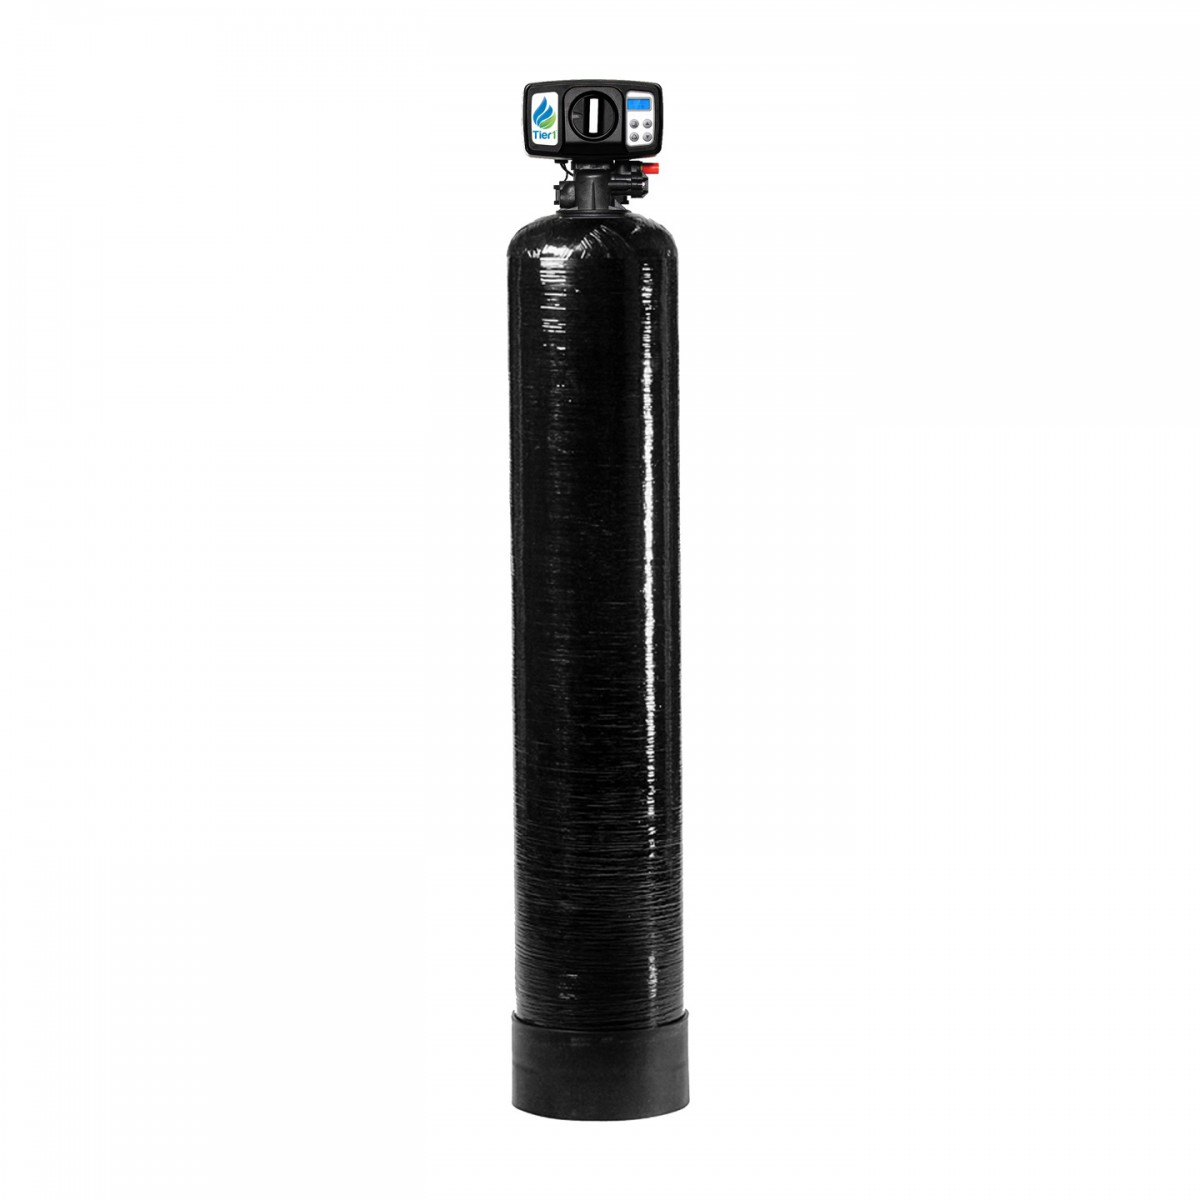 Tier1 Whole House Water Filtration System for Chlorine Reduction - Advanced  Series for 4-6 Bathrooms